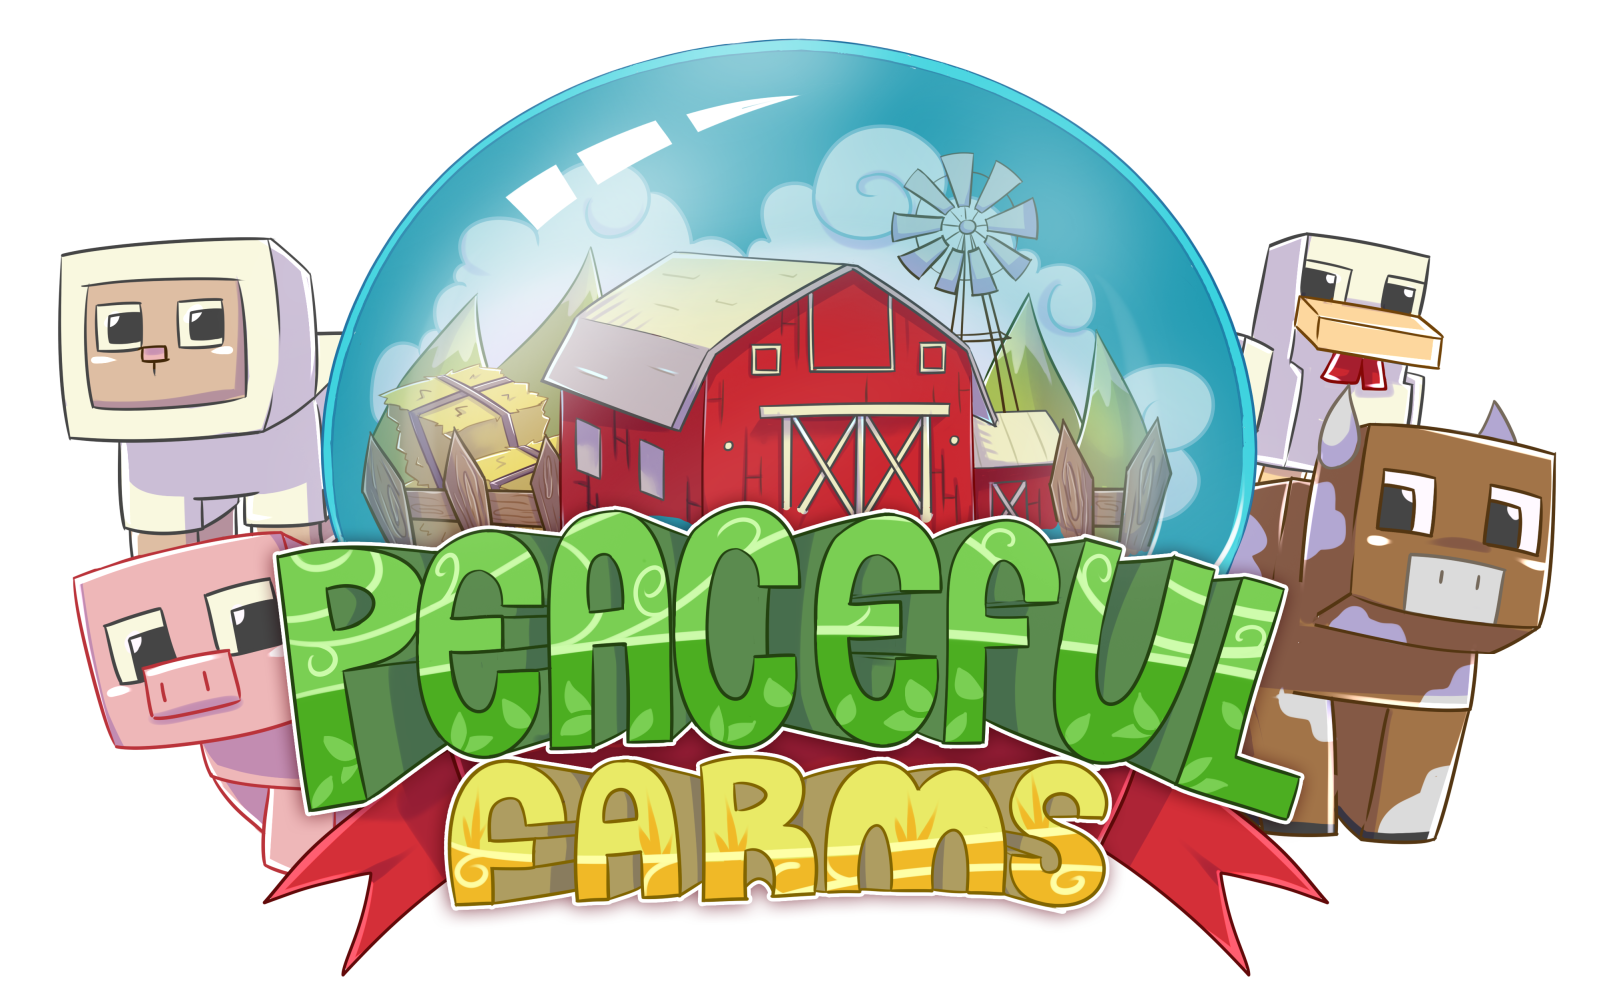 And guidelines peaceful farms. Rules clipart guideline